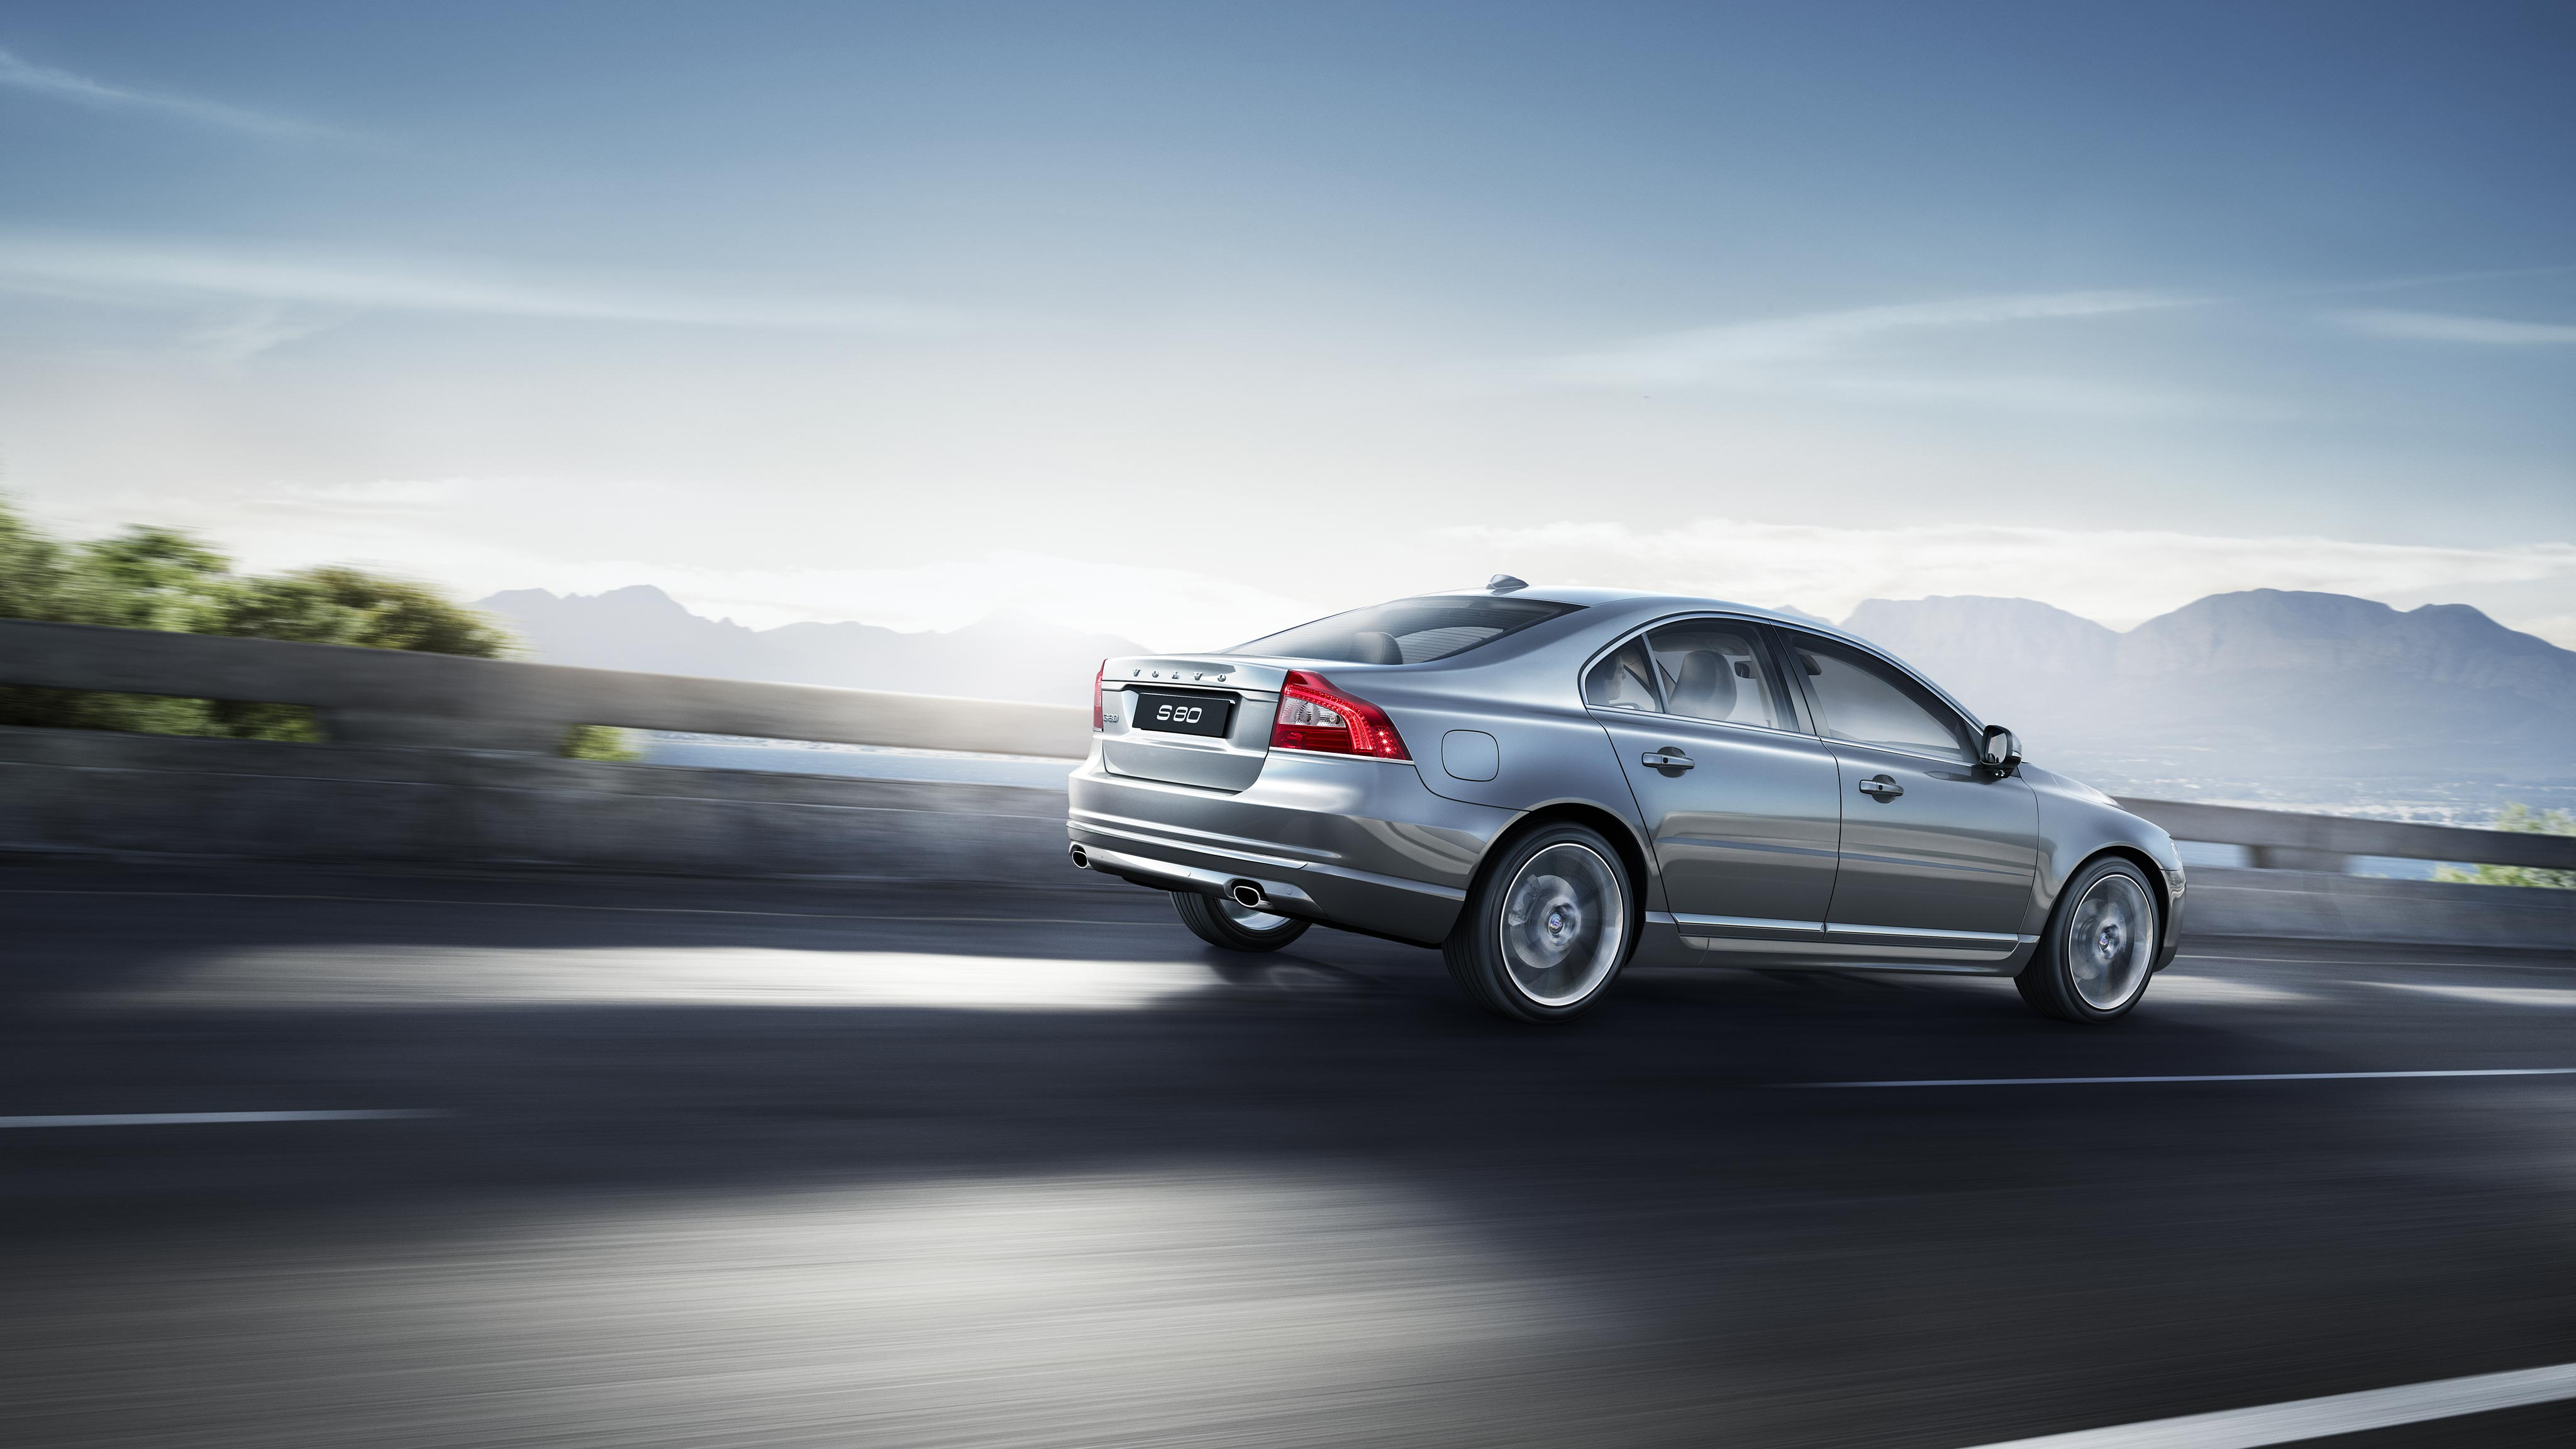 Volvo S80 Pictures and Gallery